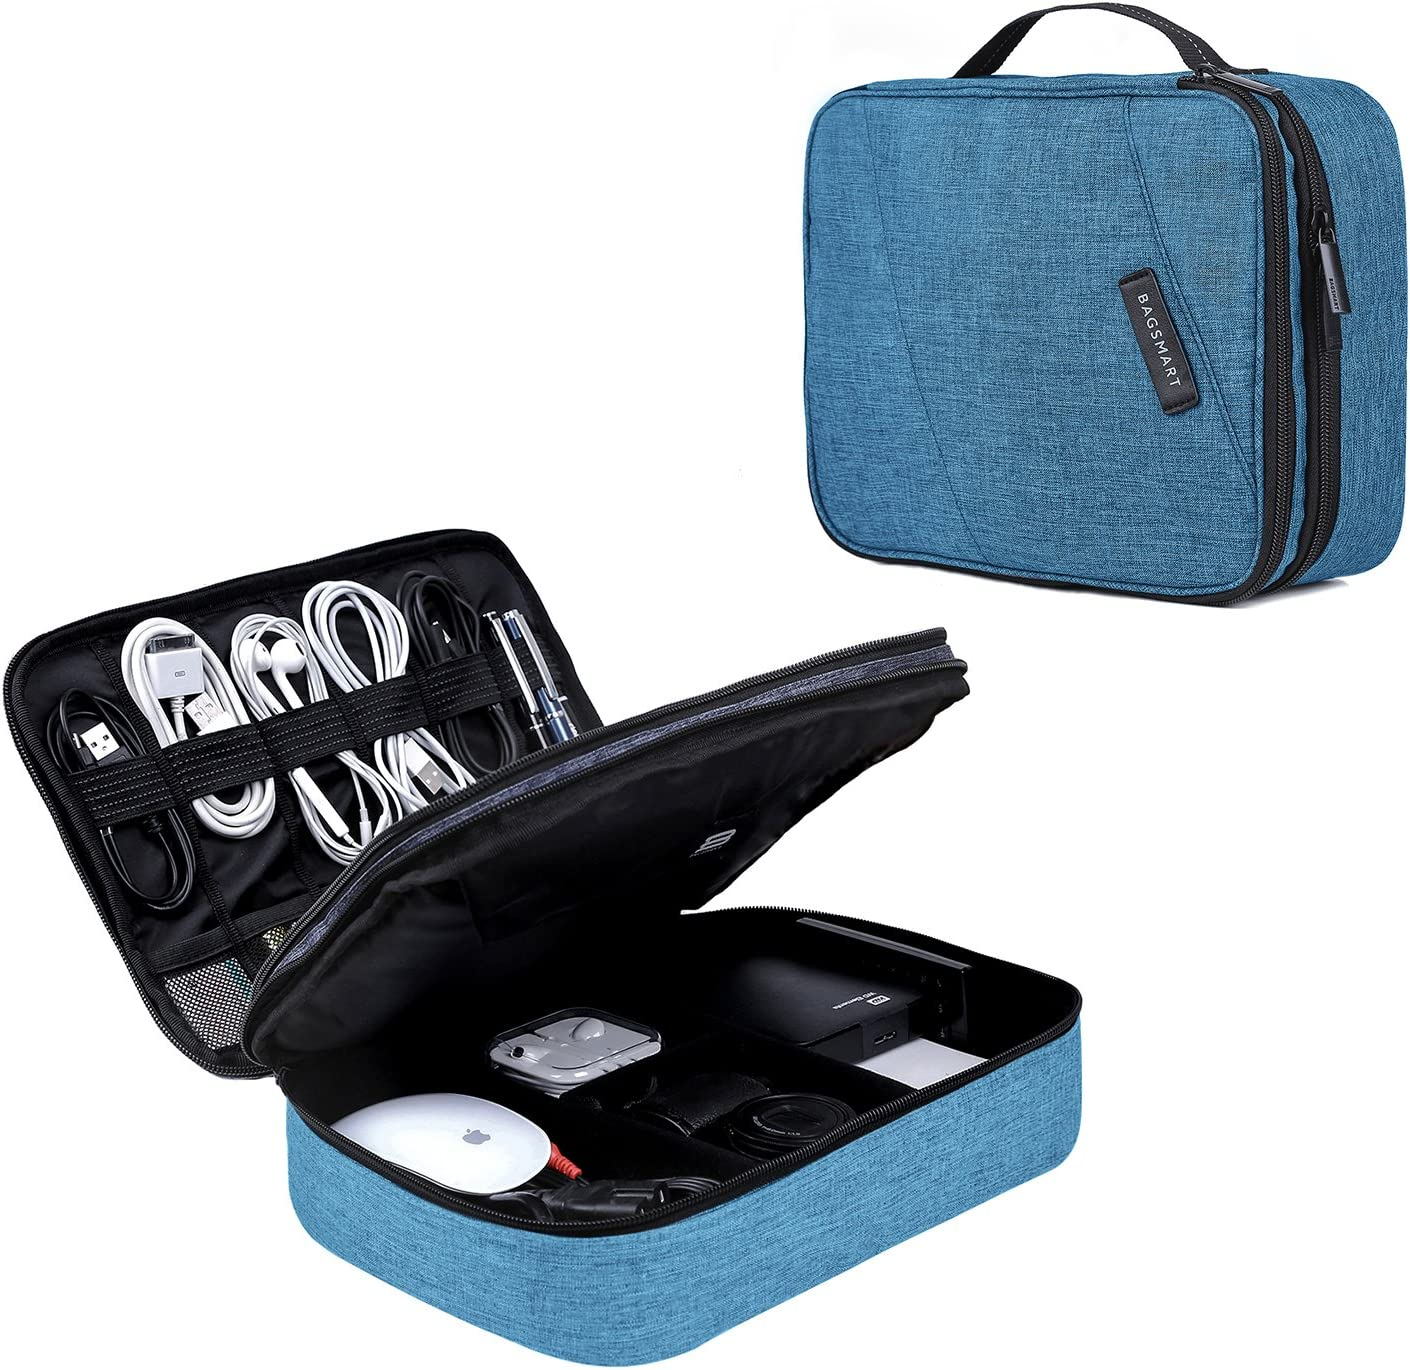 Electronic Organizer BAGSMART Travel Cable Organizer Bag for Hard Drives, Cables, Charger, Phone, USB, SD Card (Teal-Large)